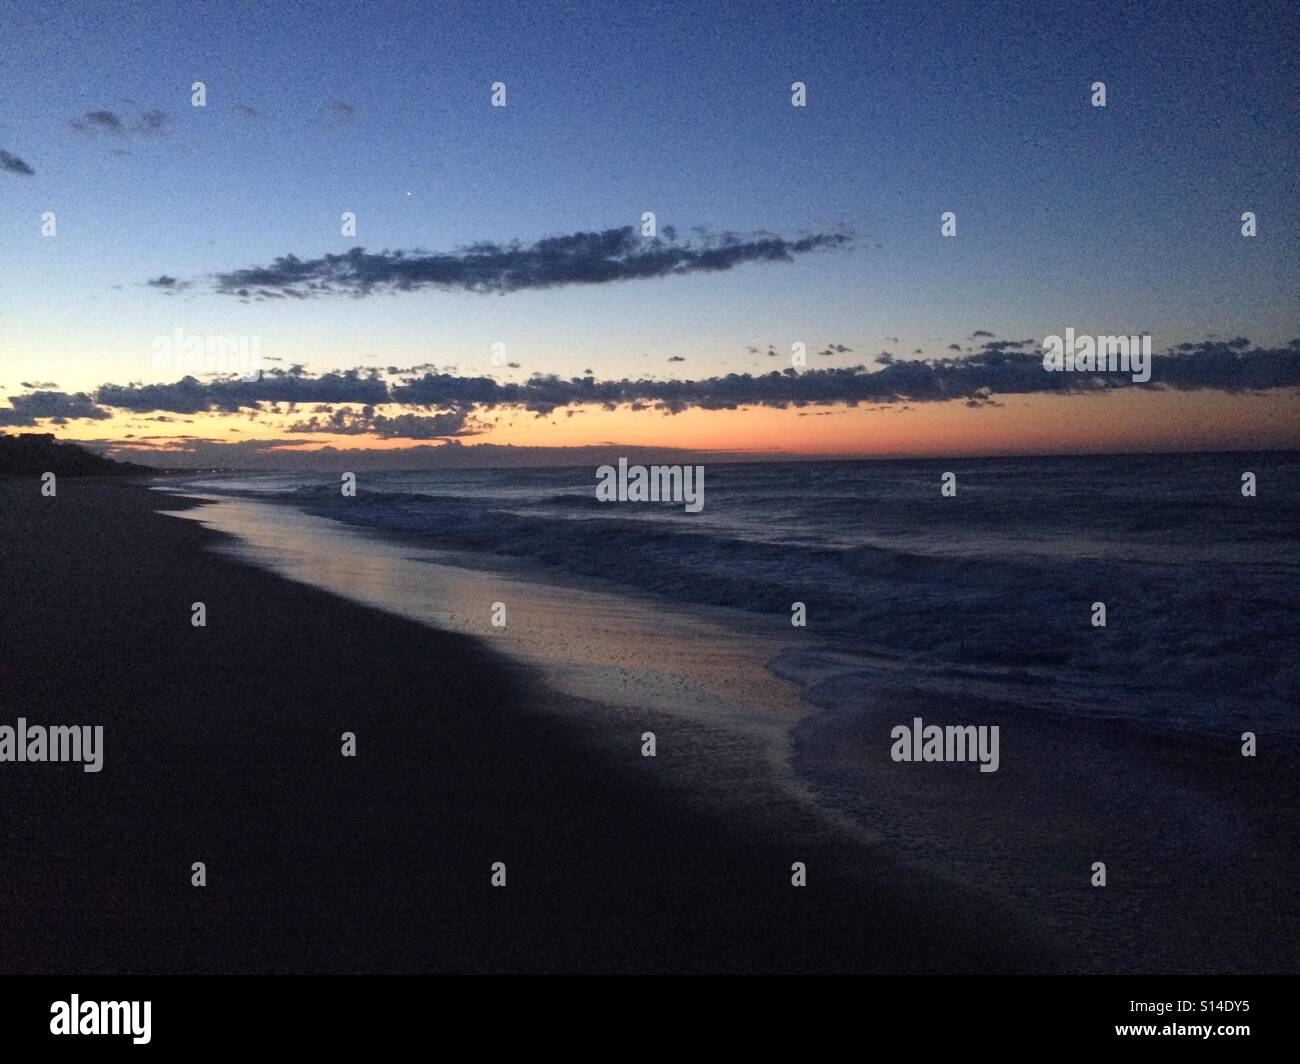 Montauk Sunset. - Stock Image